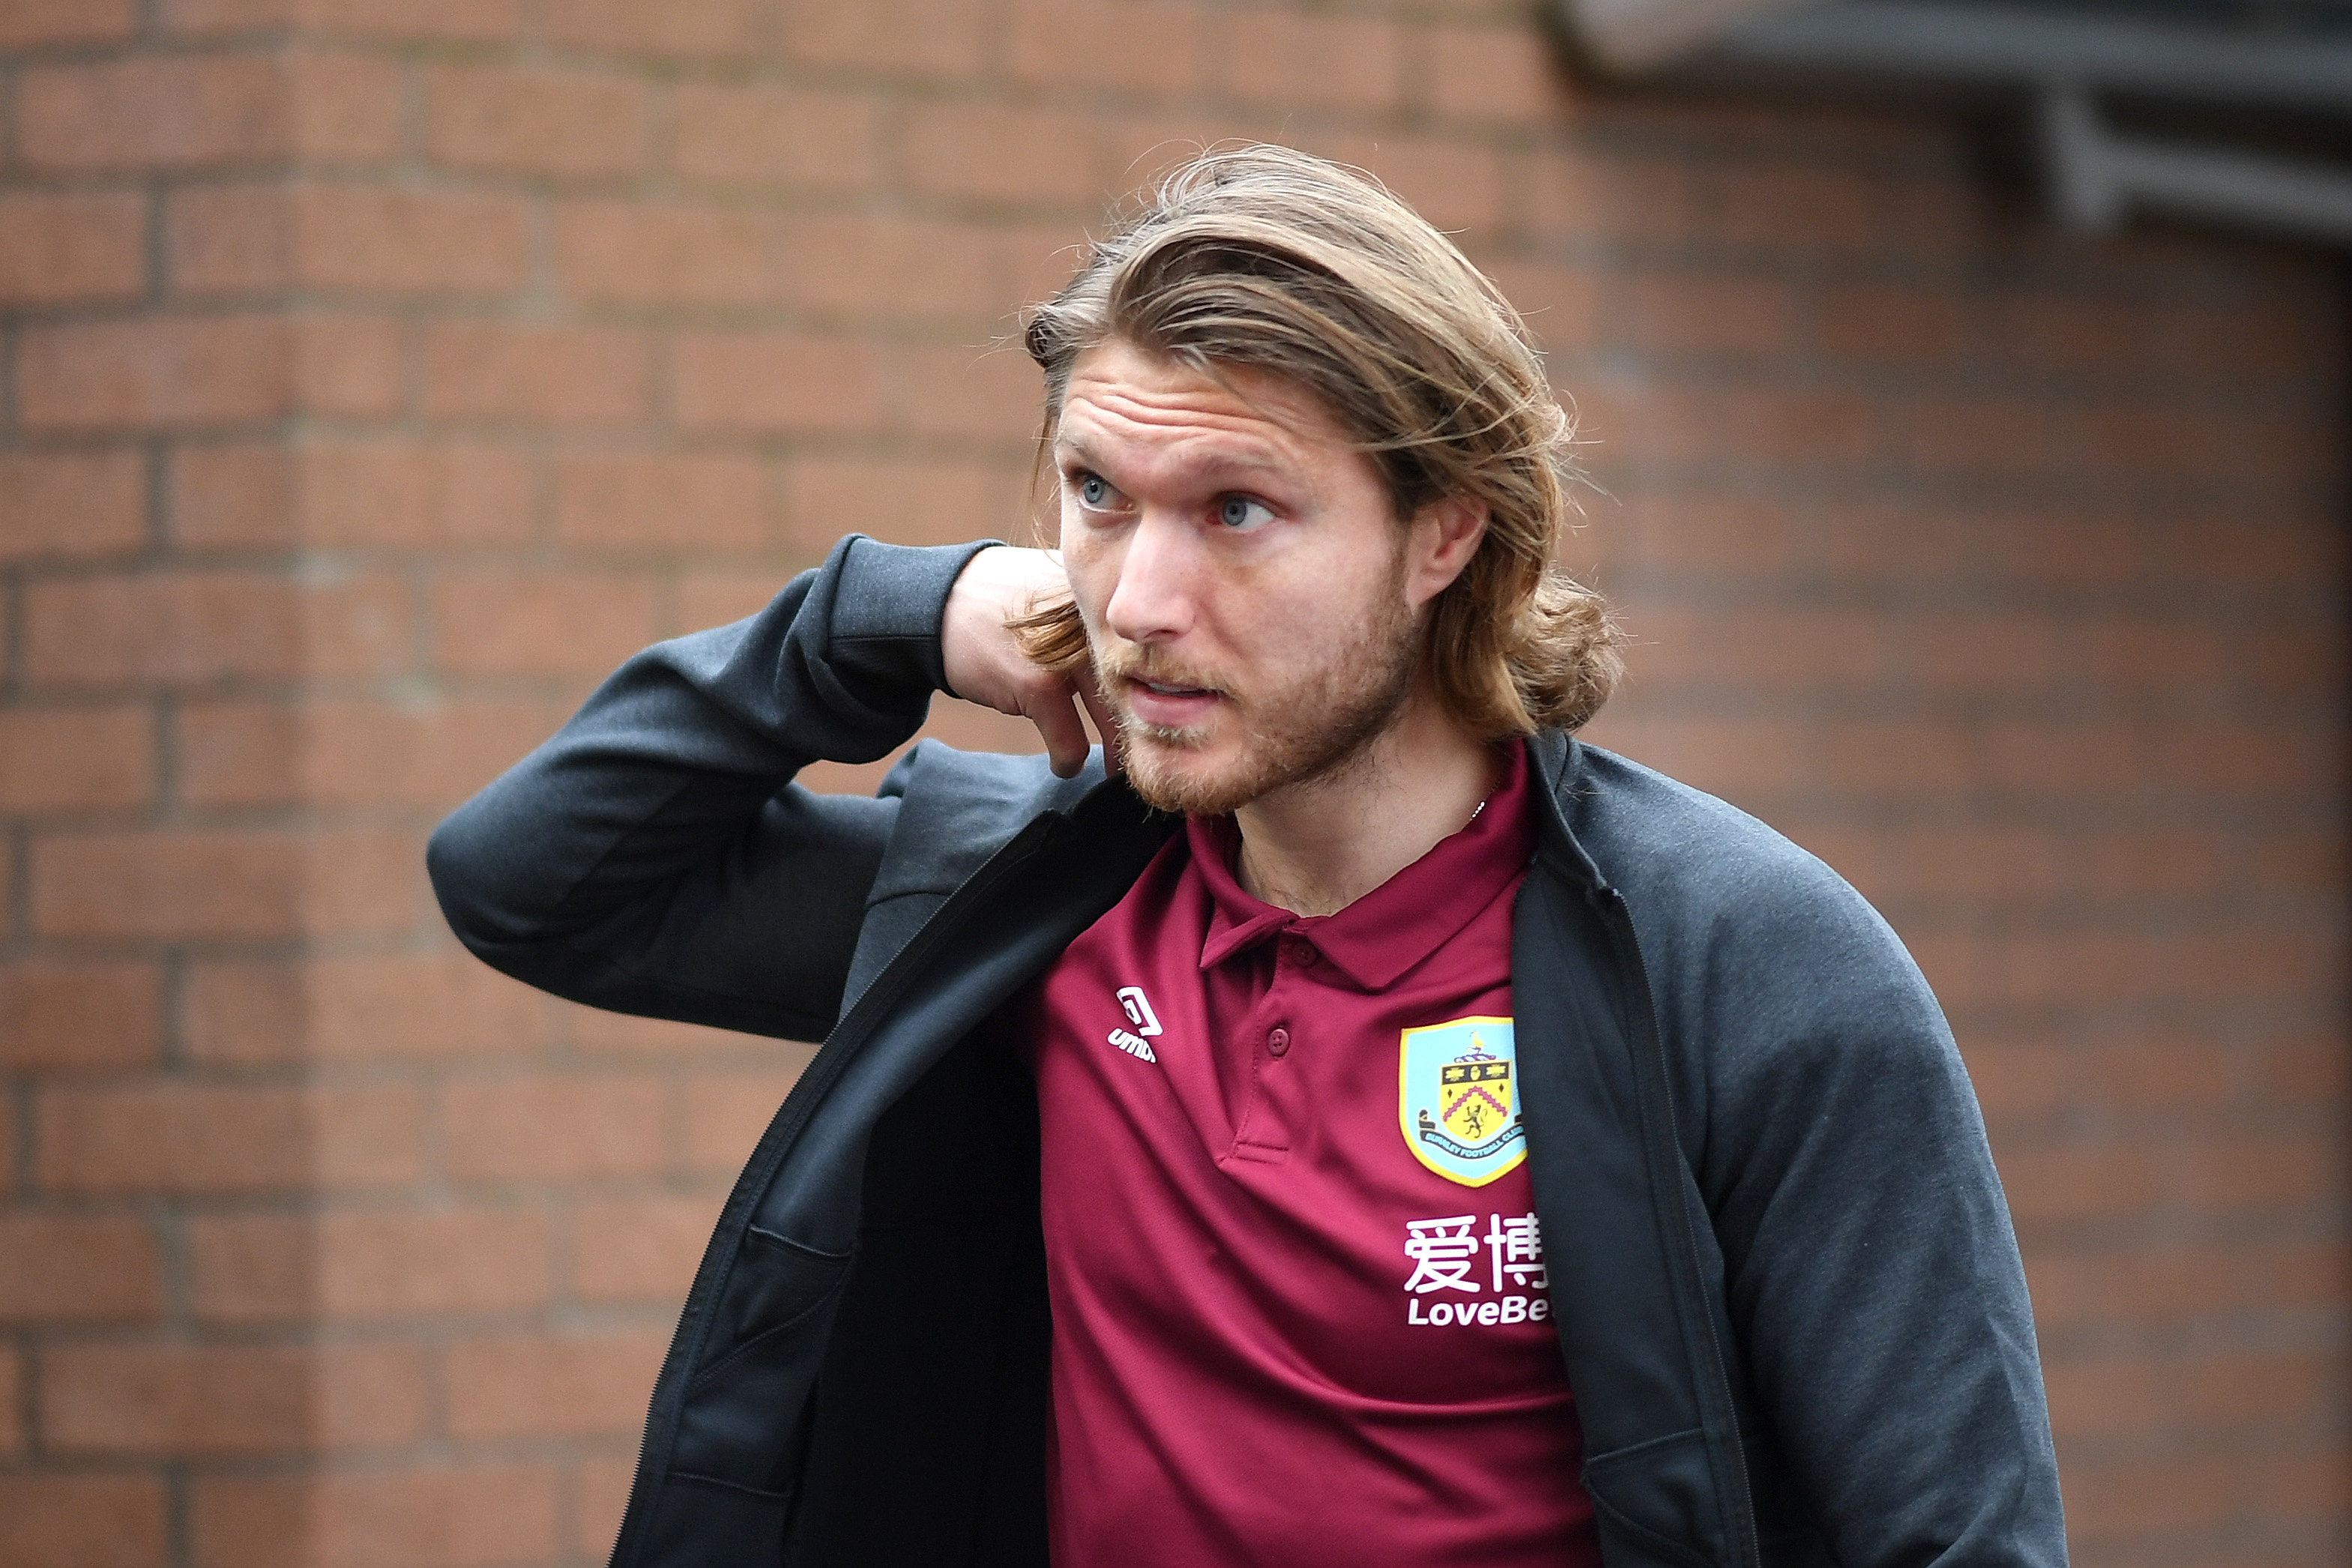 Newcastle United on the verge of signing Jeff Hendrick who is seen in the photo